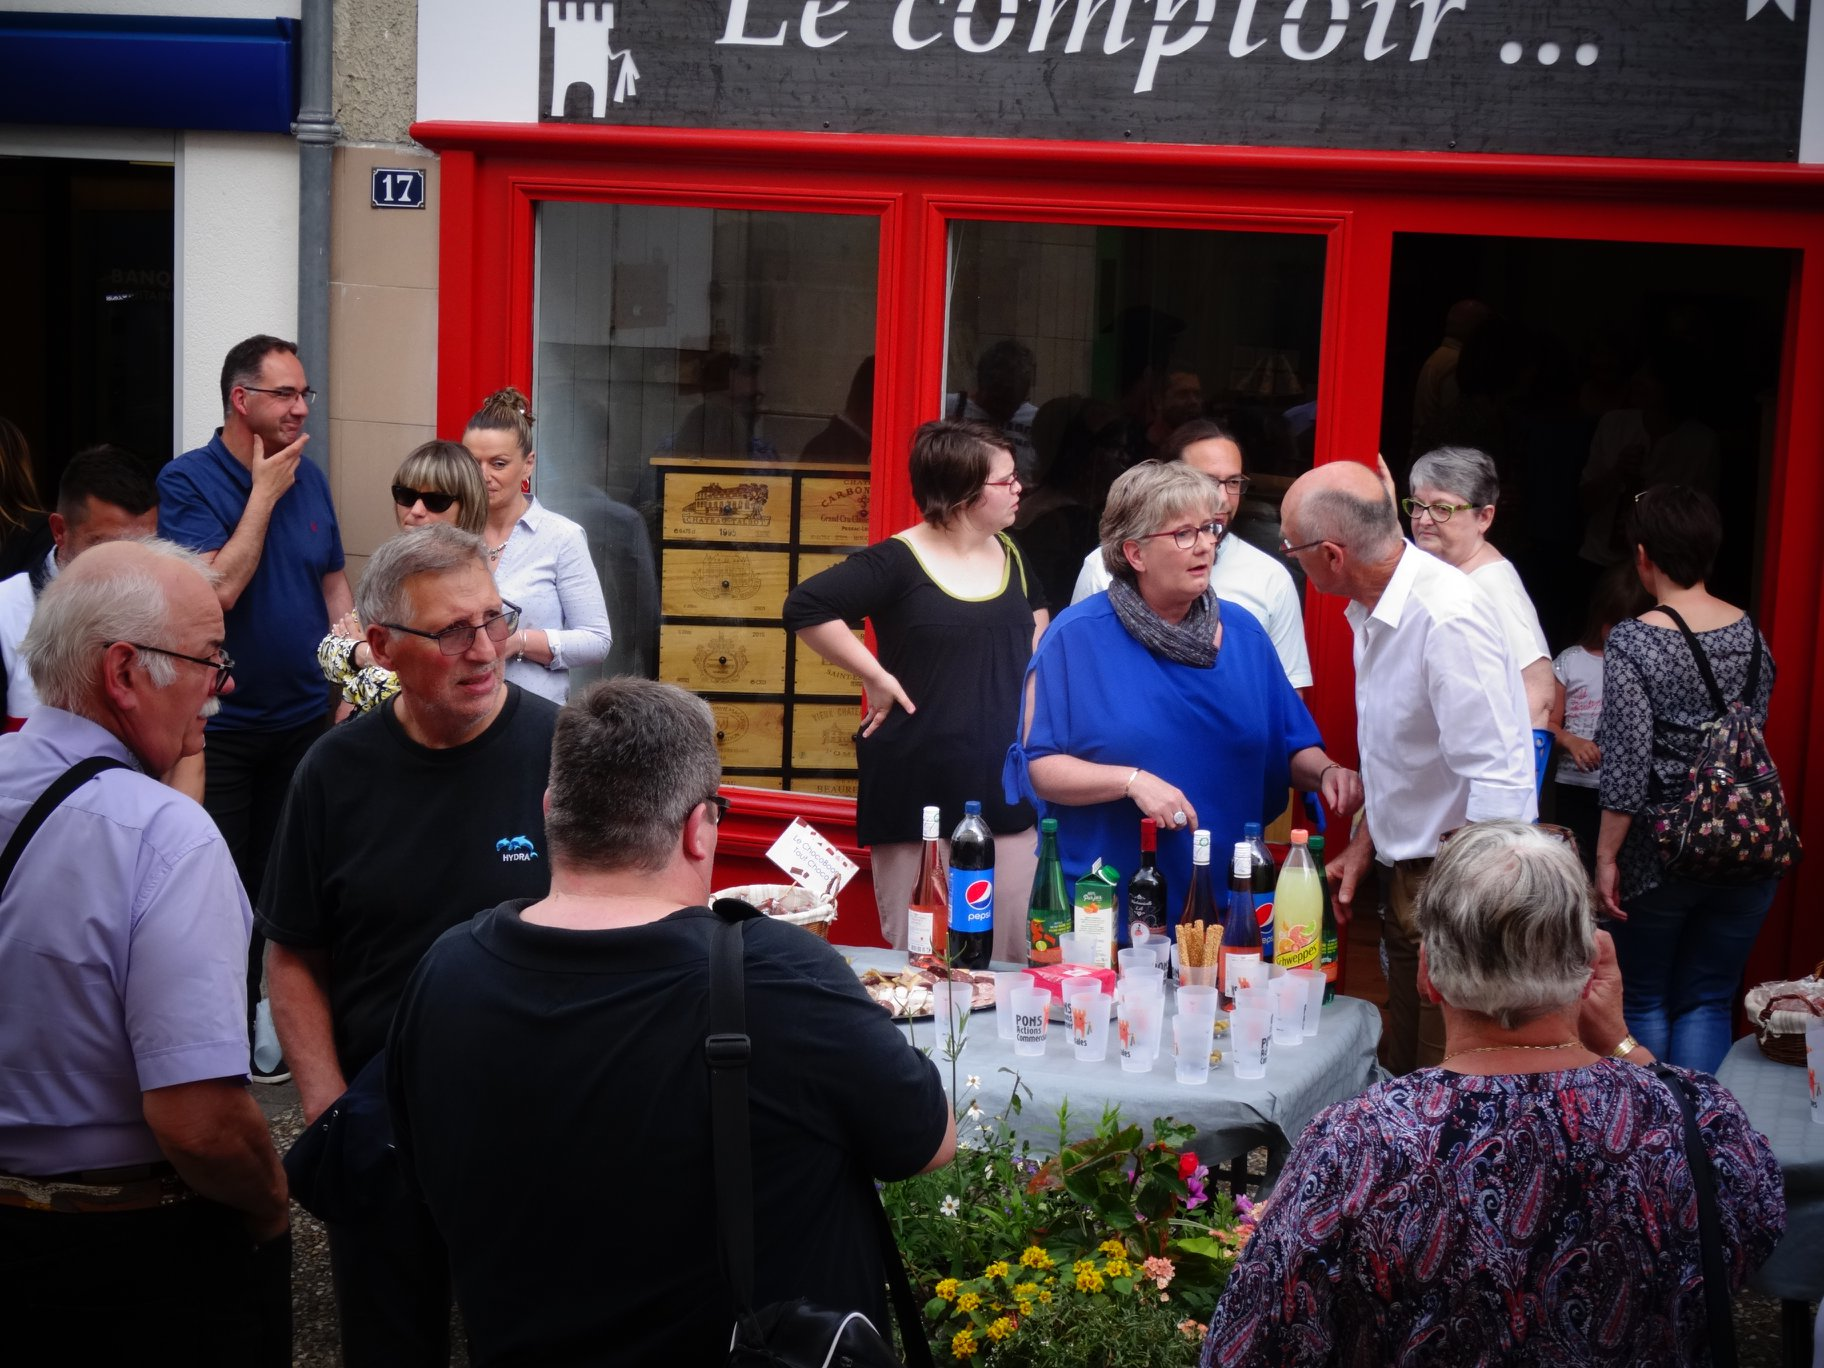 Pons Actions Commerciales - Inauguration Le Comptoir Juin 2019 - 08